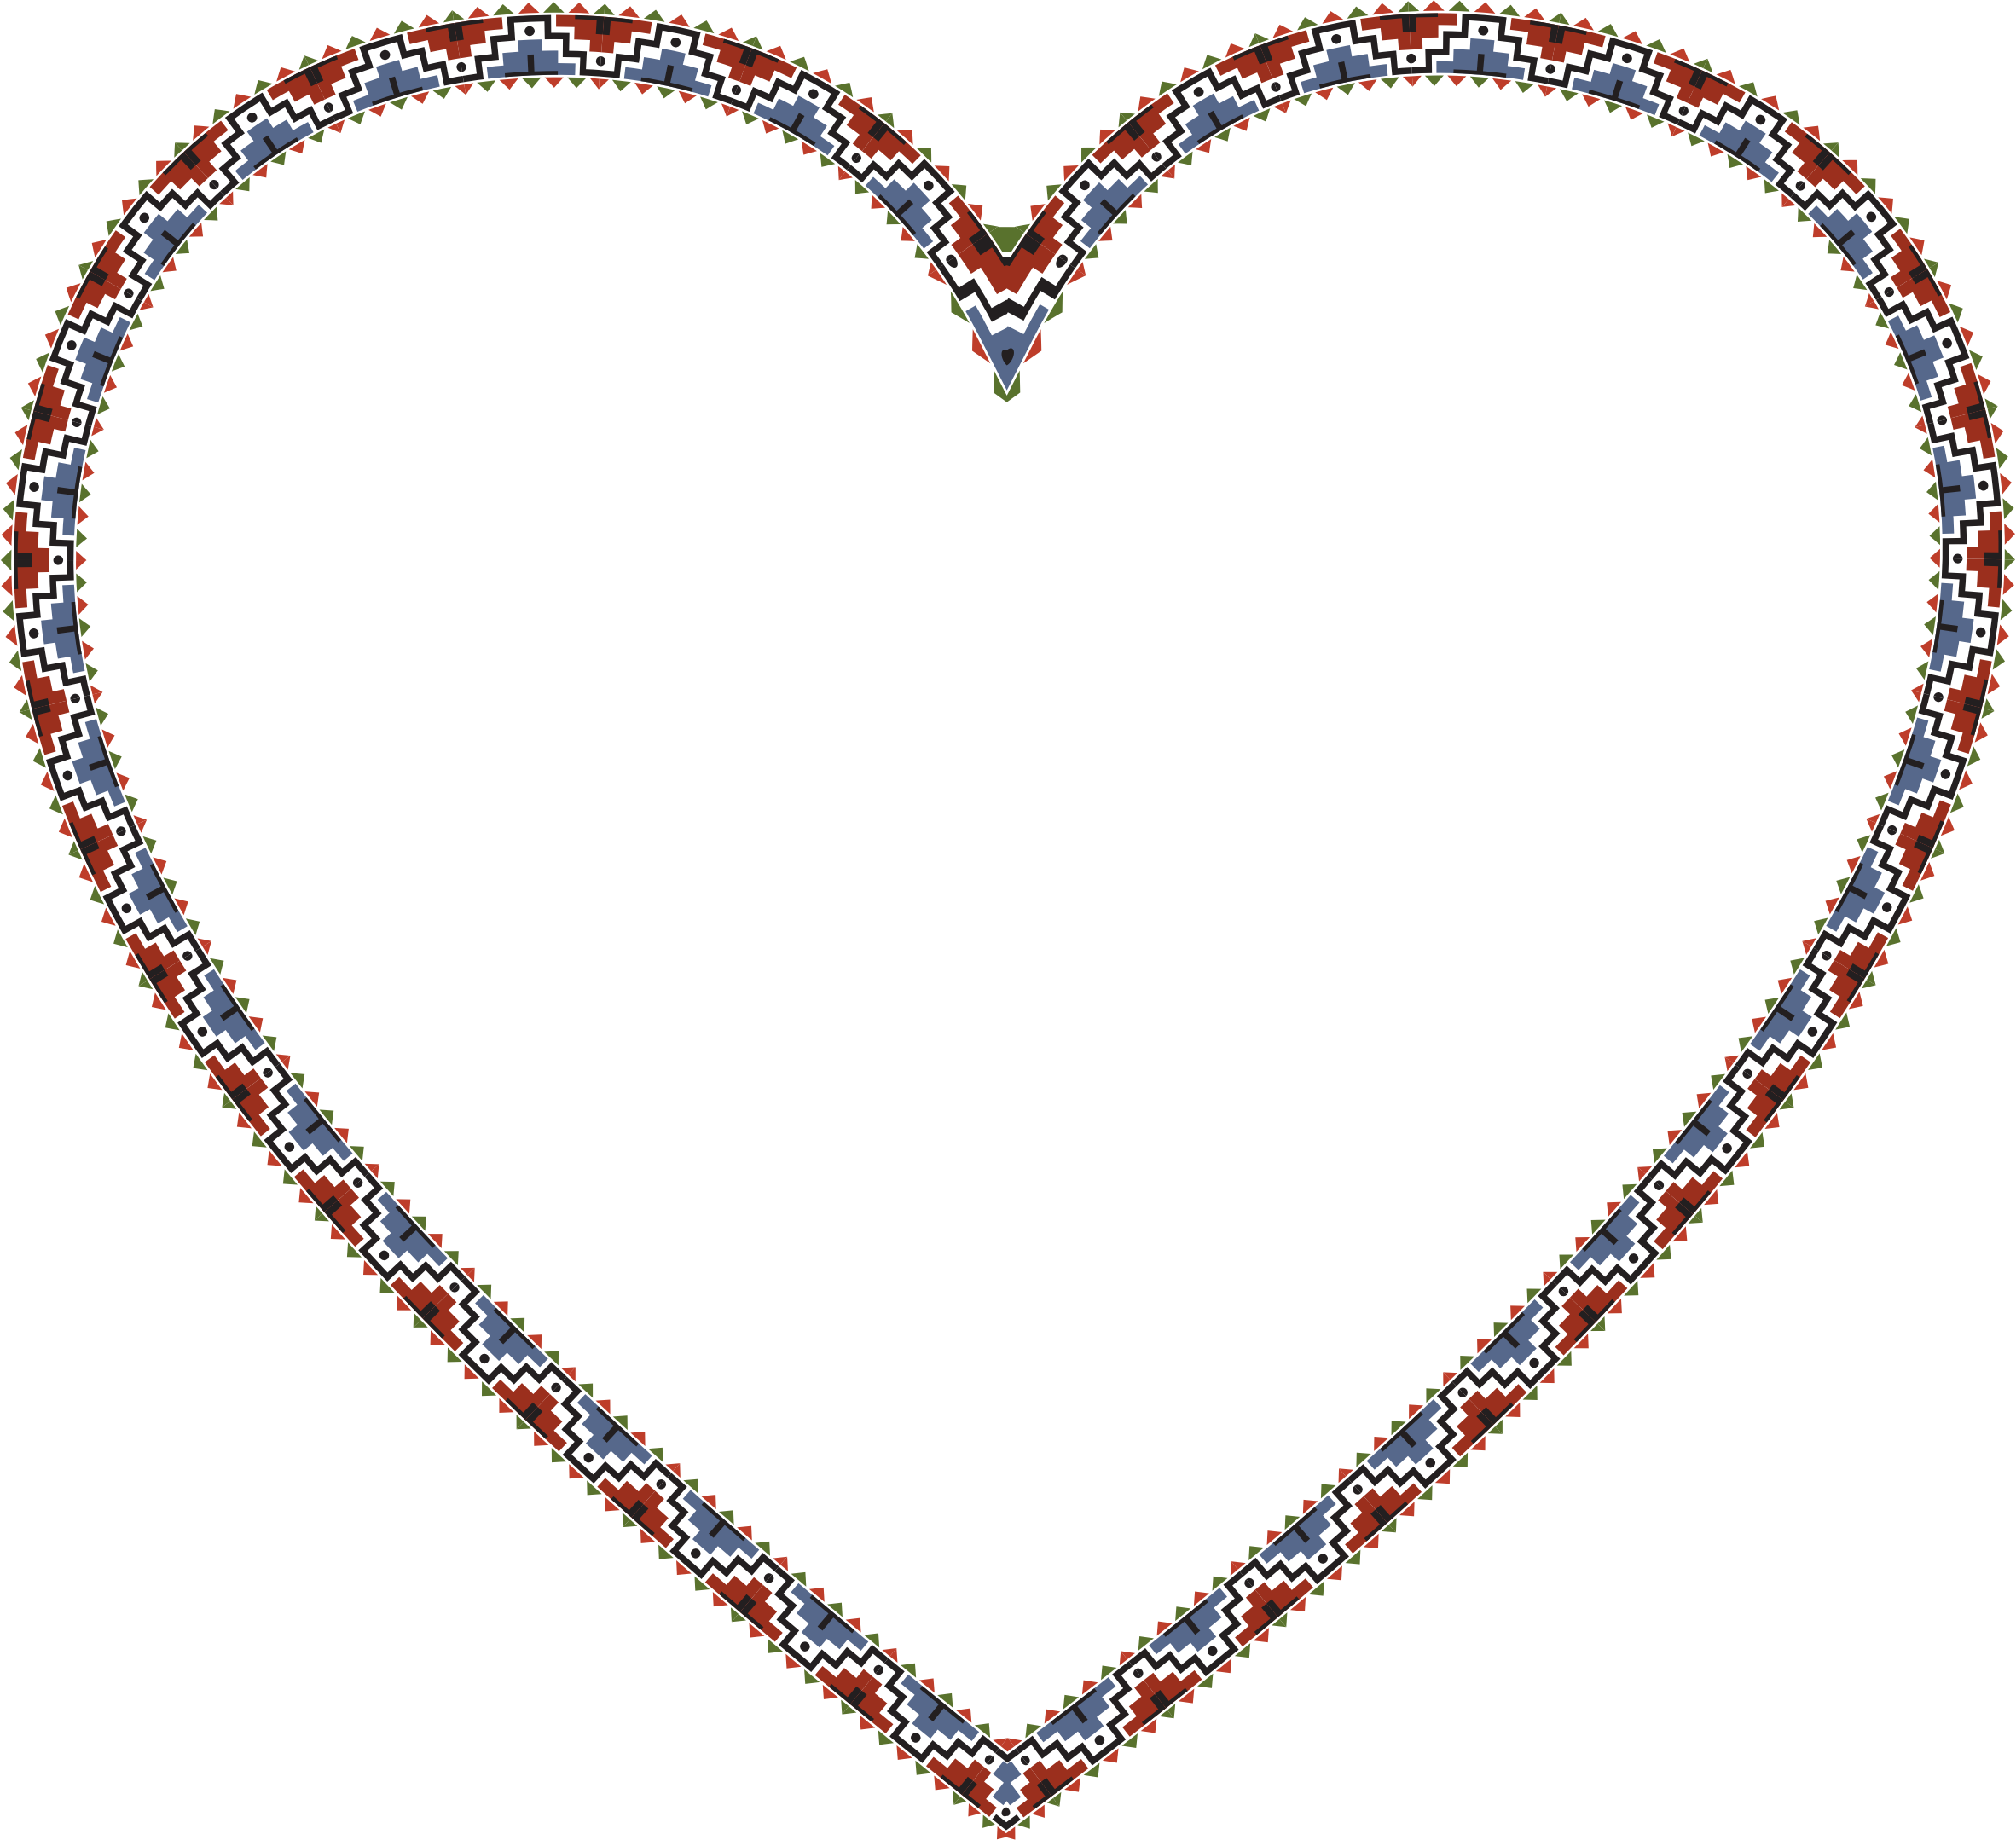 American heart clipart image freeuse download Clipart - Native American Heart image freeuse download